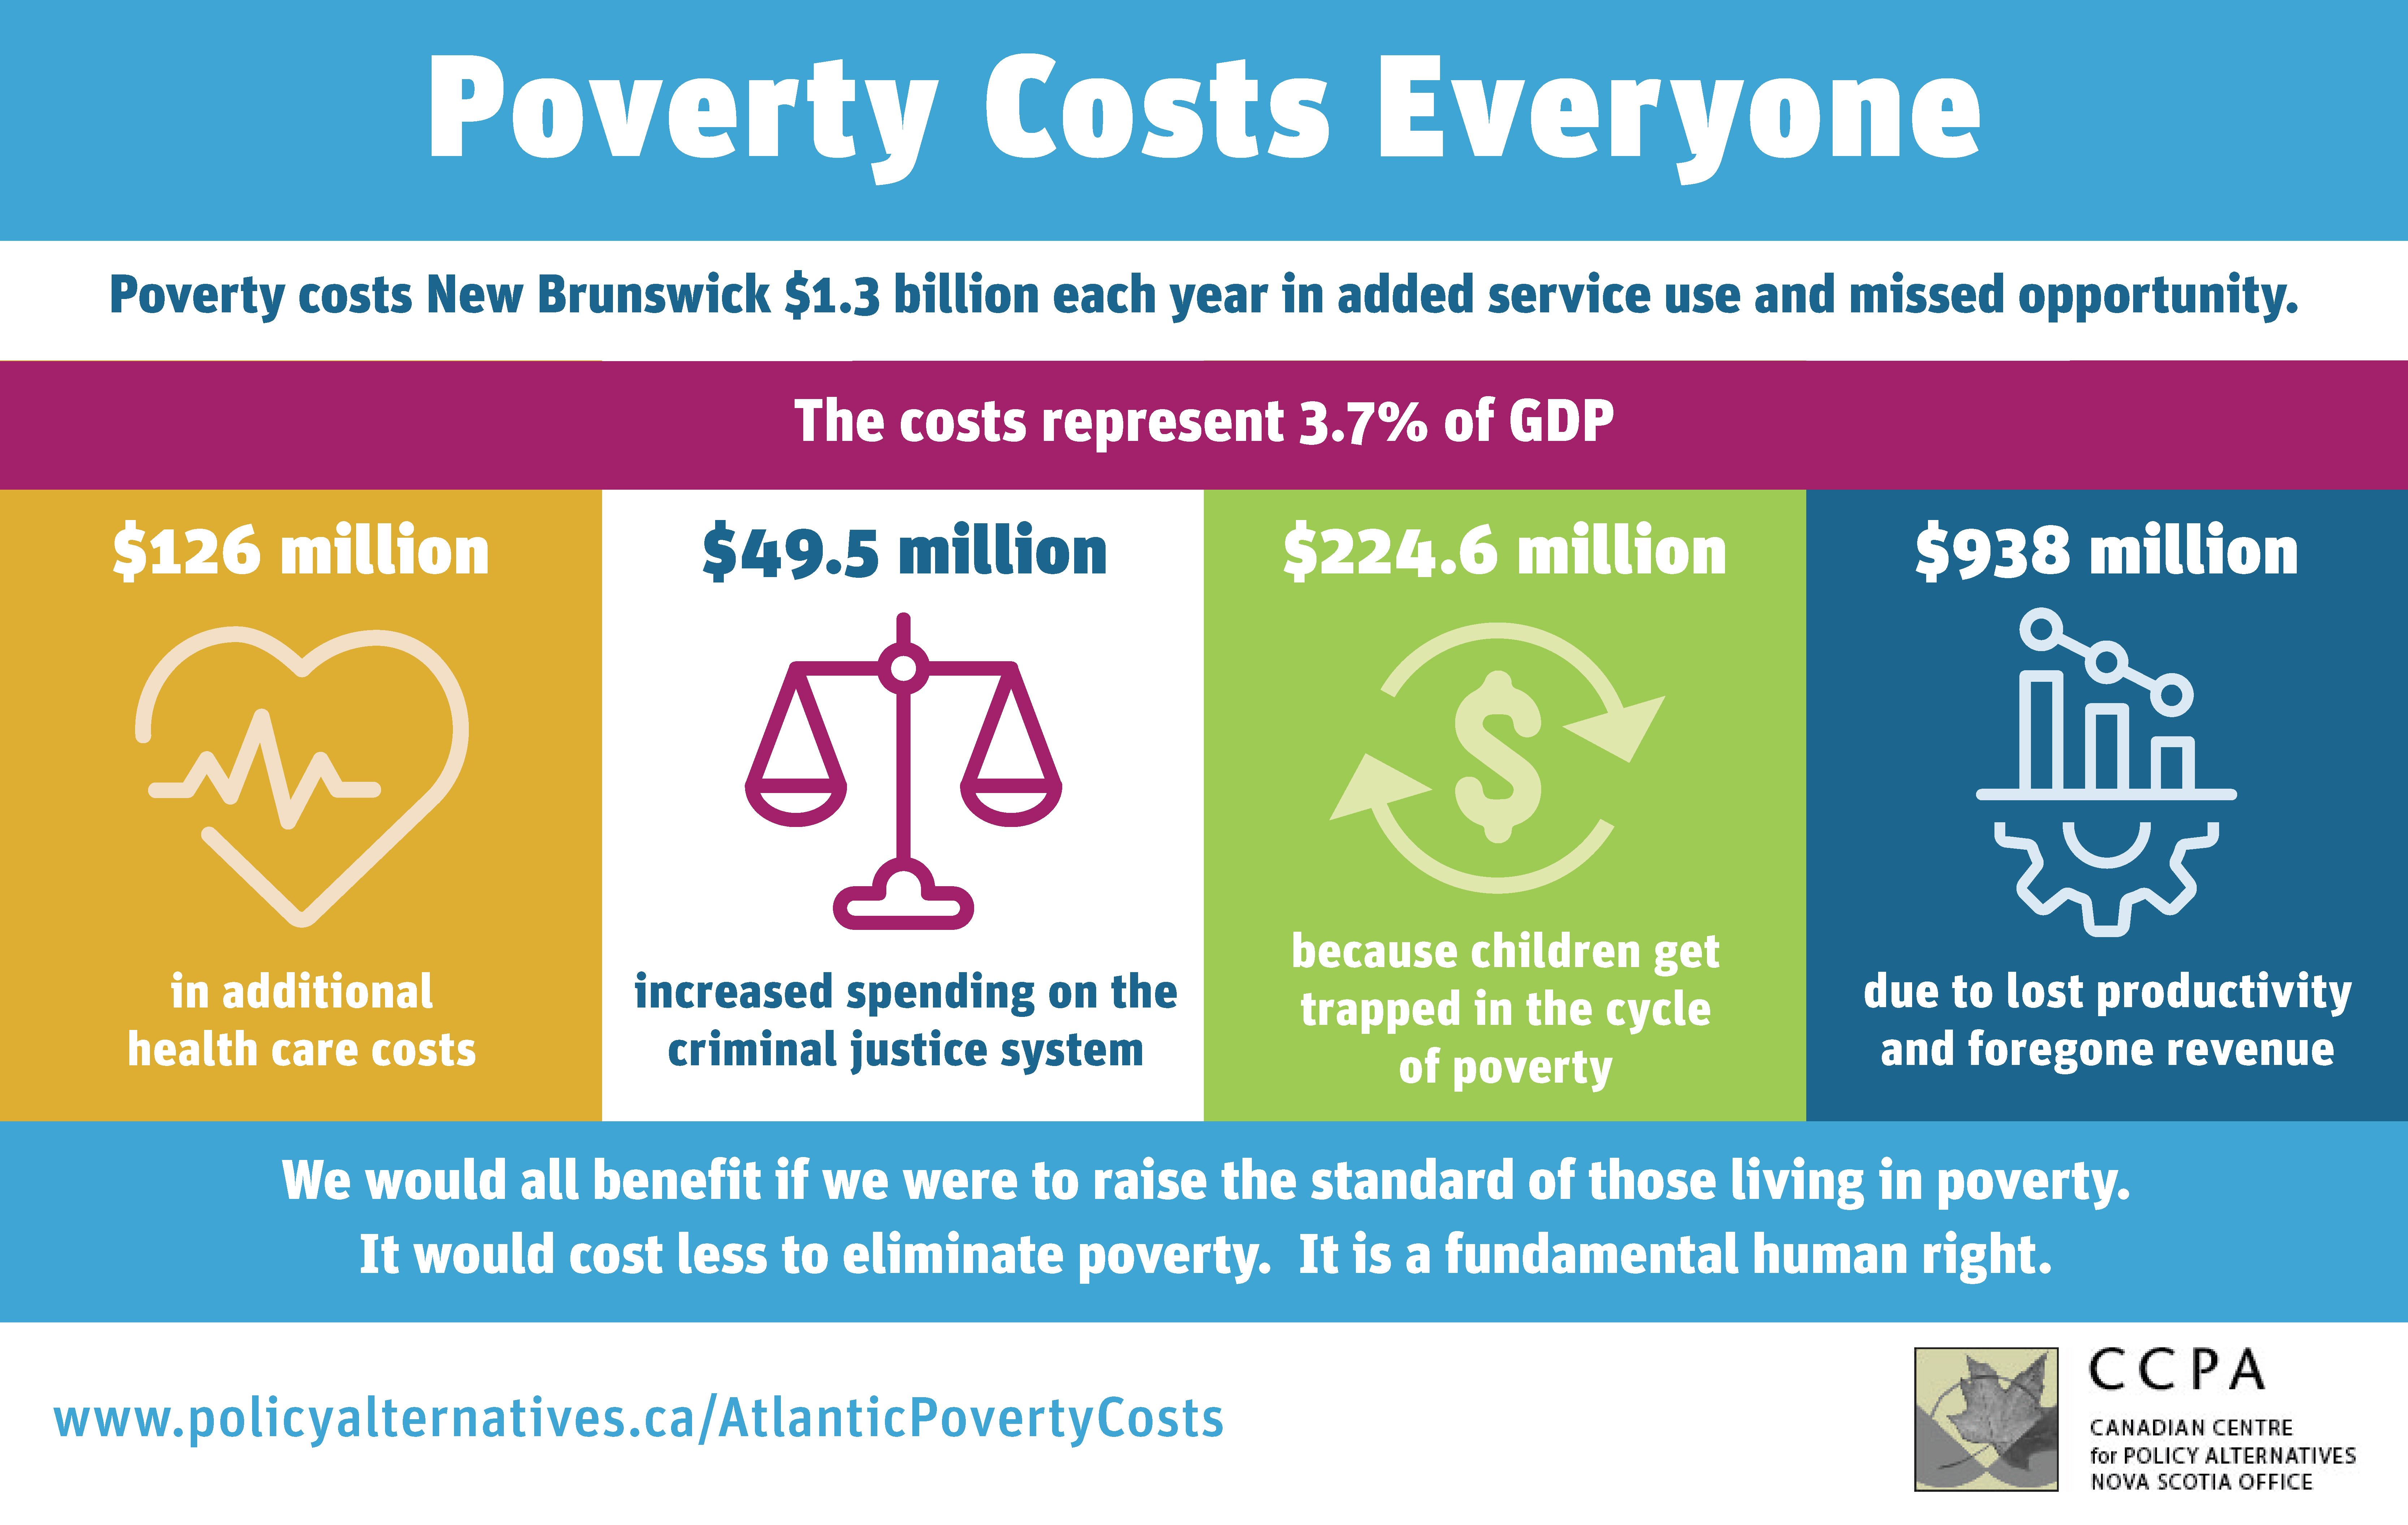 A graphic breakdown of poverty costs in New Brunswick in 2021.